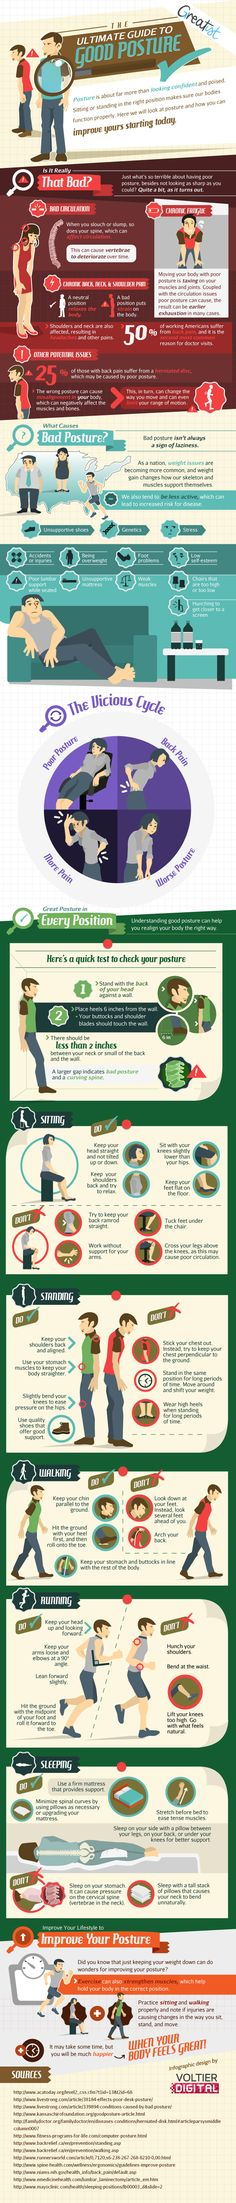 The geek's ultimate guide to improving posture - #infographic